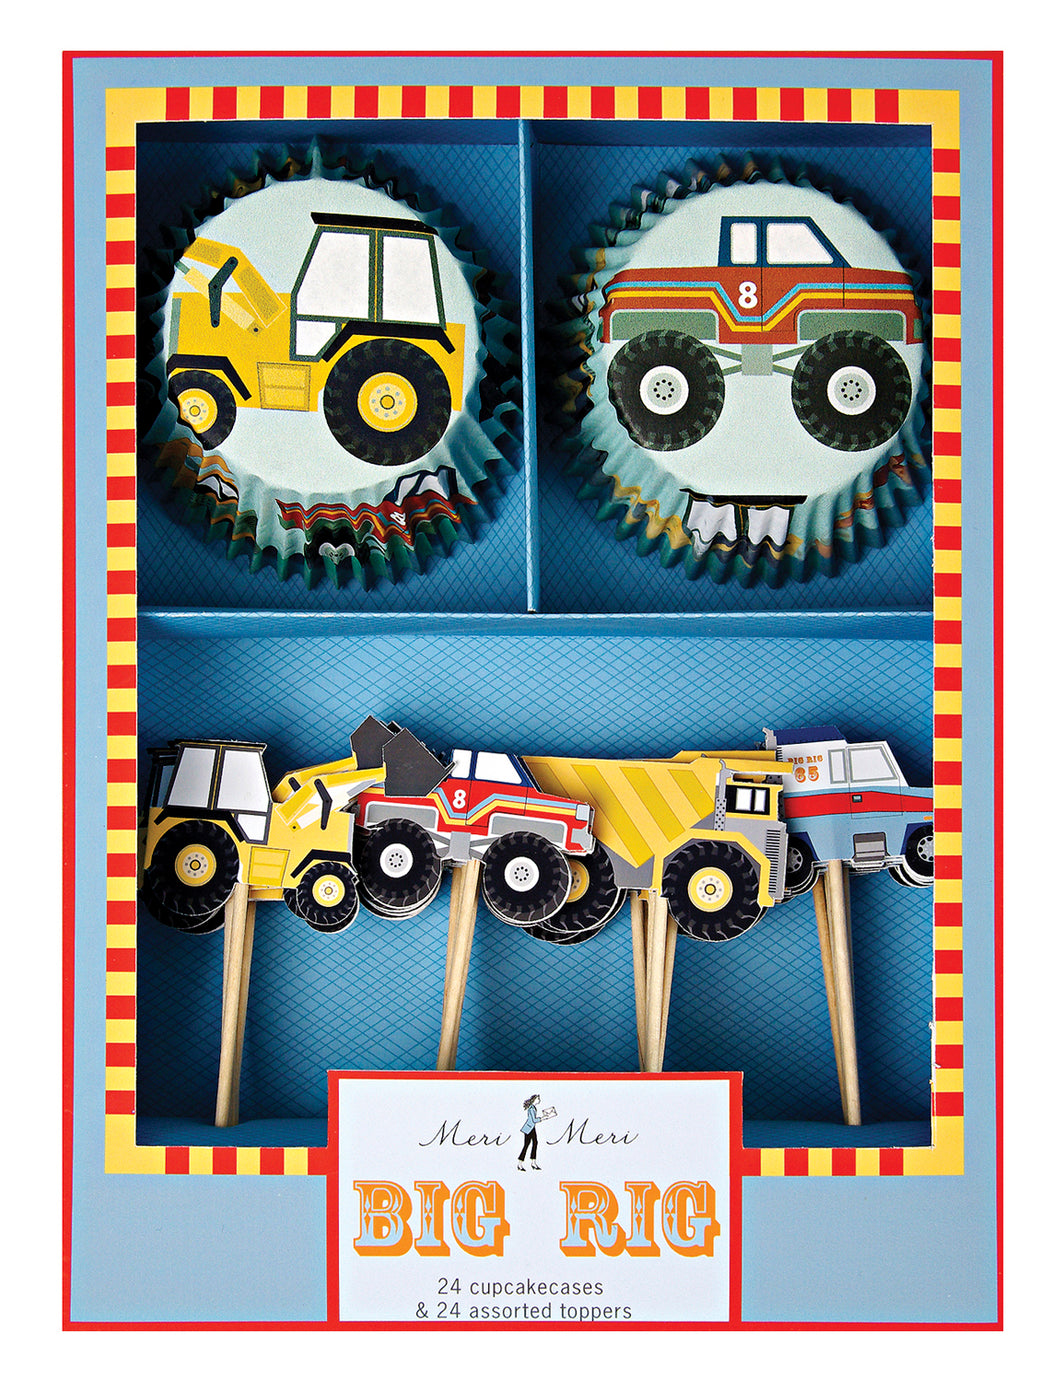 The Big Rig cupcake kit features all the mega machines a mechanic tot goes mad for. Including four styles of topper with diggers, monster trucks, tippers and tow trucks and with two styles of cupcake cases.  Quantity: 24 cupcake cases and 24 assorted toppers in 4 designs